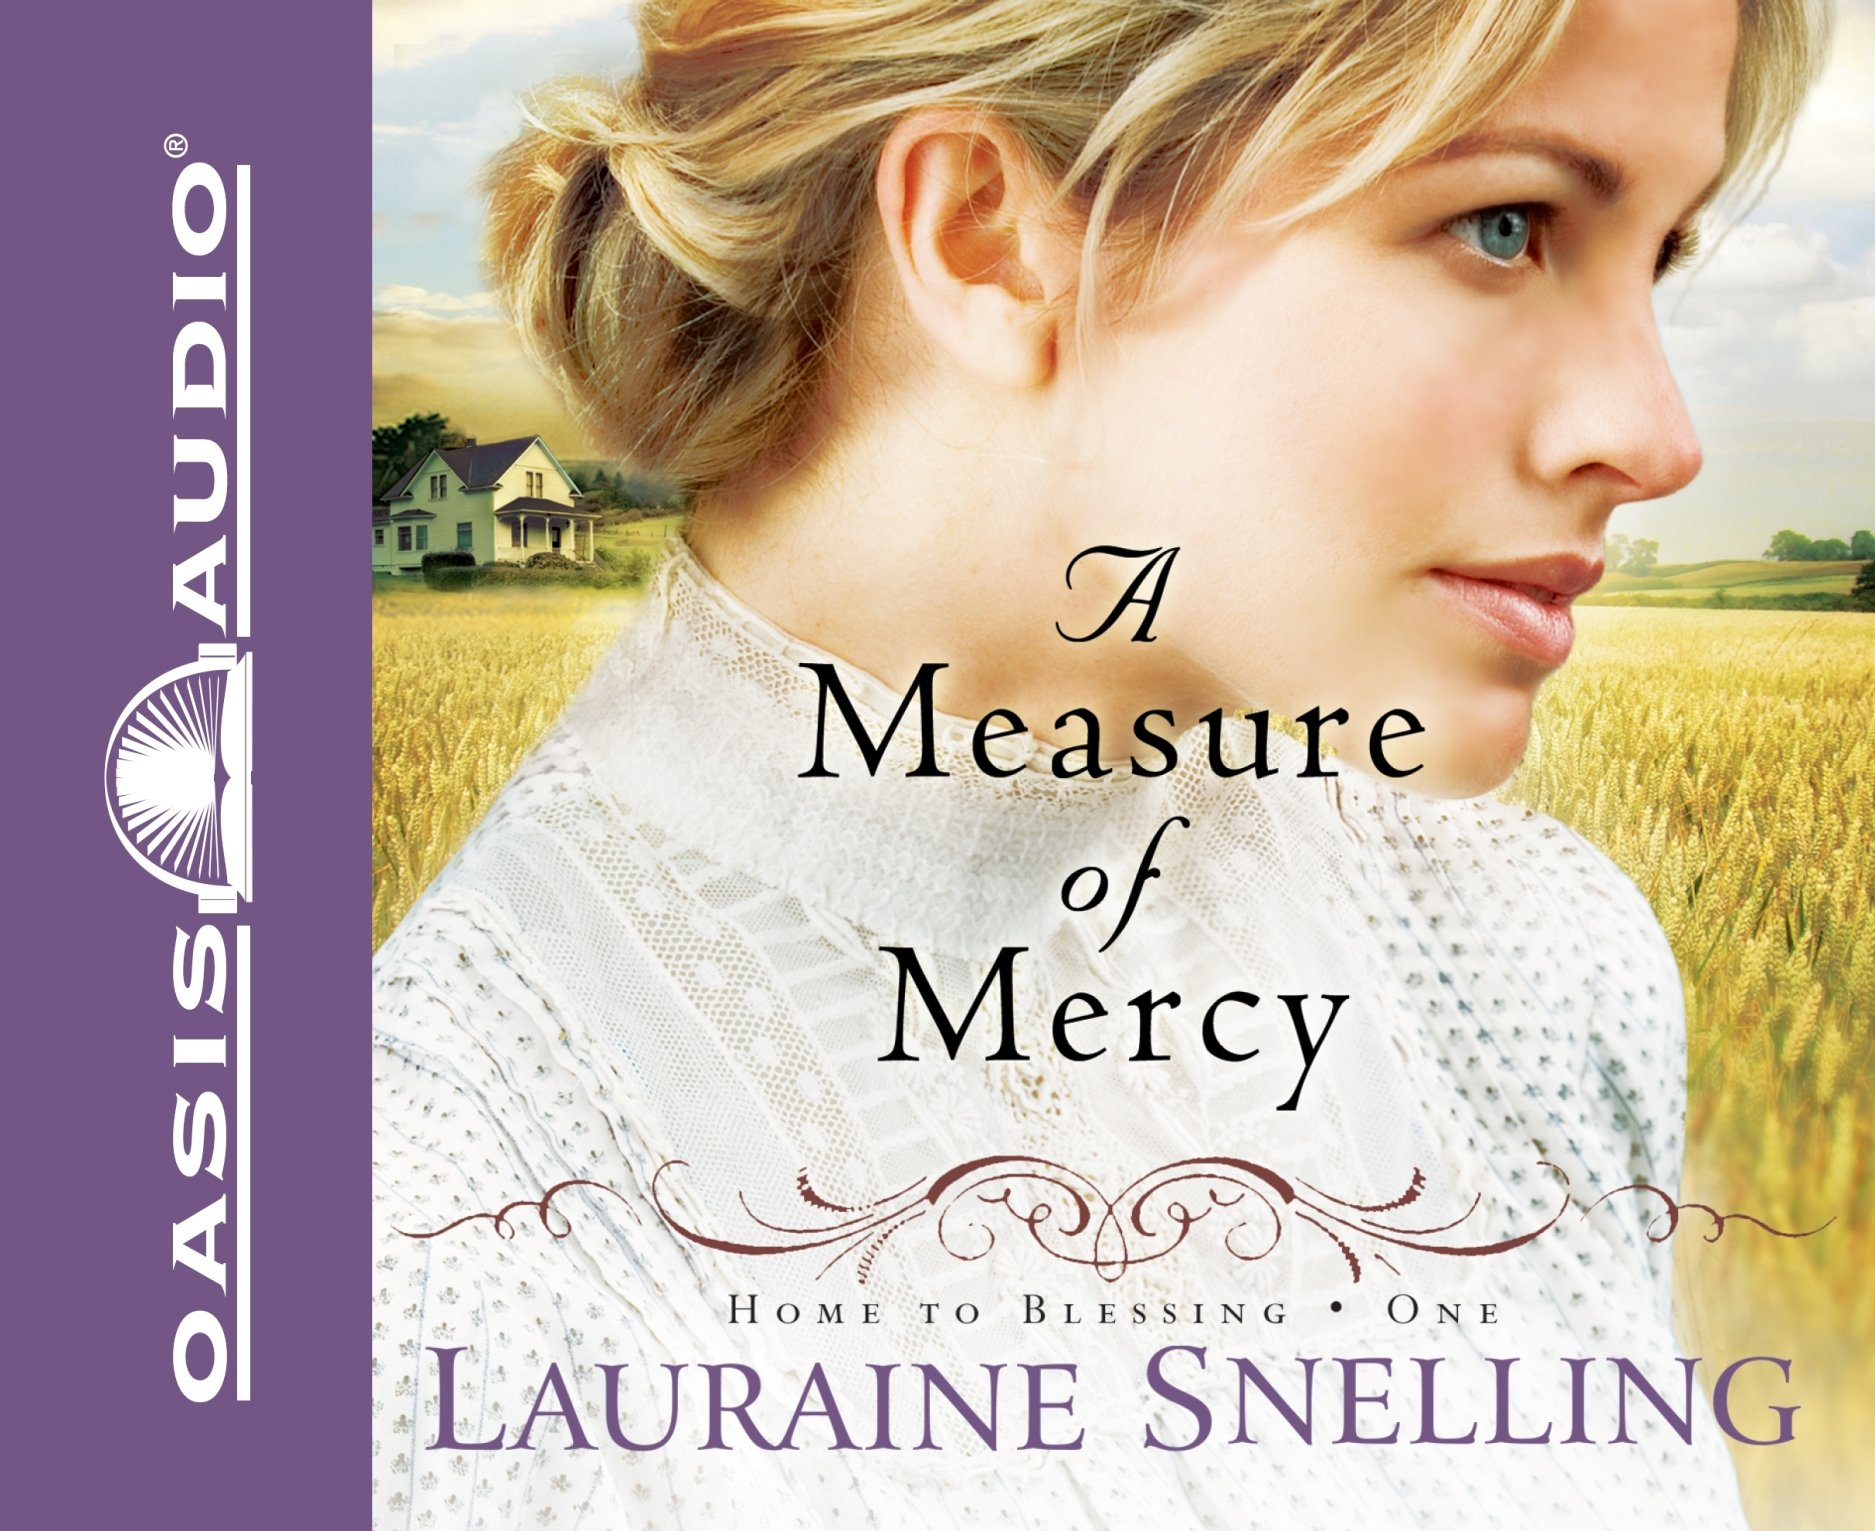 Books by Lauraine Snelling